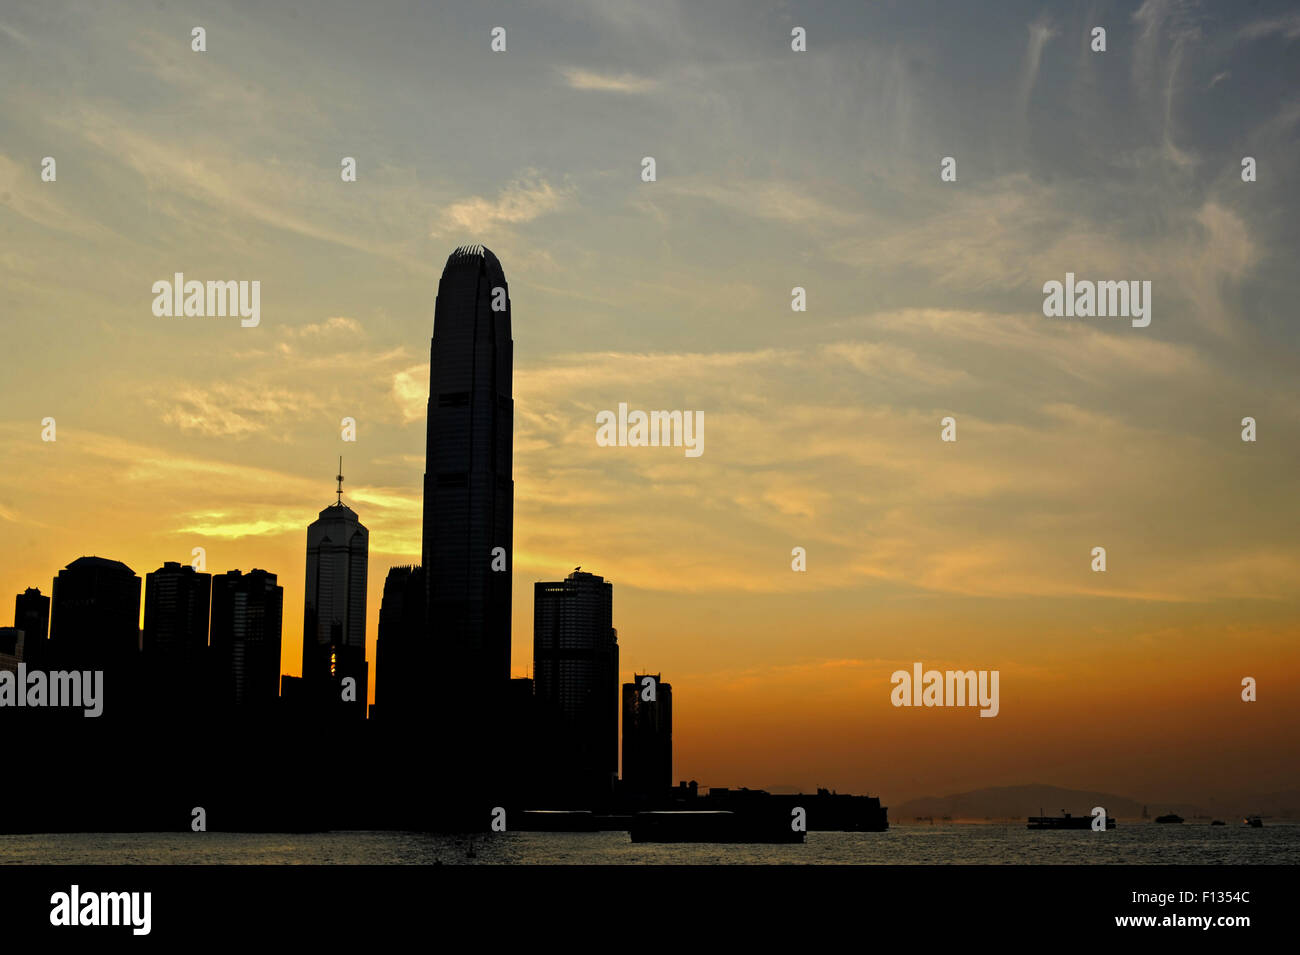 The suns sets over Hong Kong in 2011. Ian Alexander - Stock Image